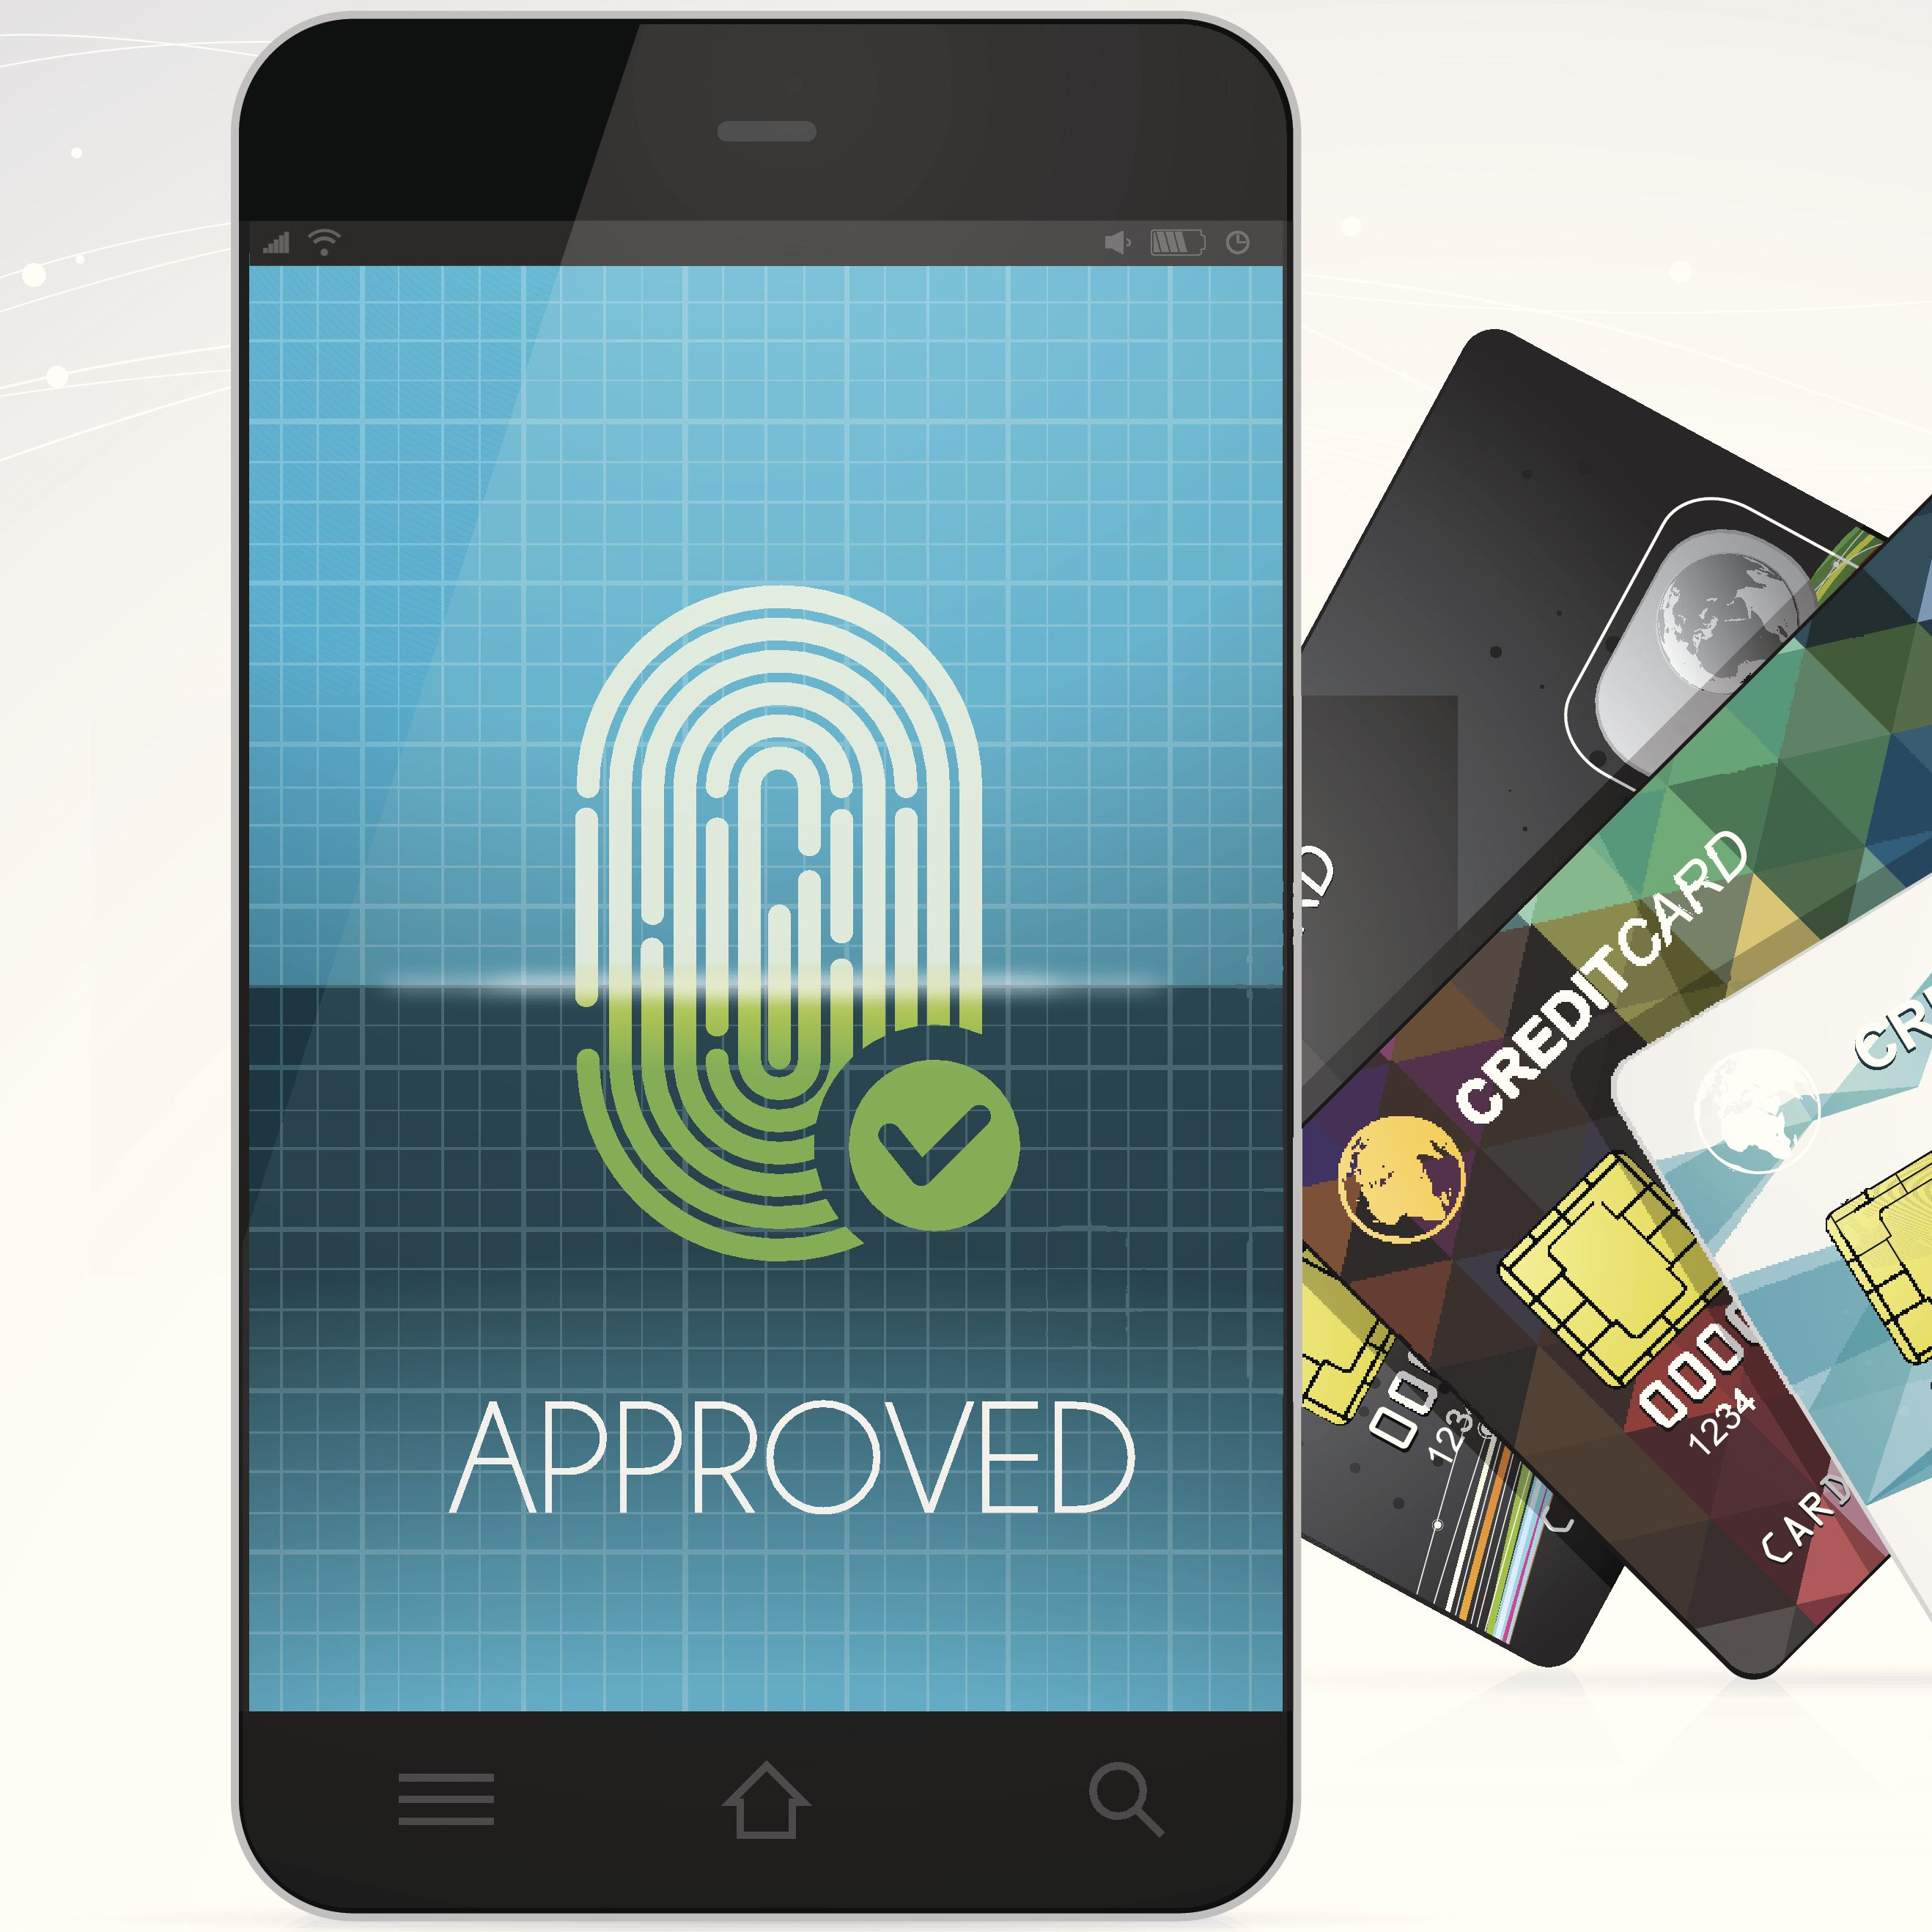 Best Security Practices for Mobile Banking